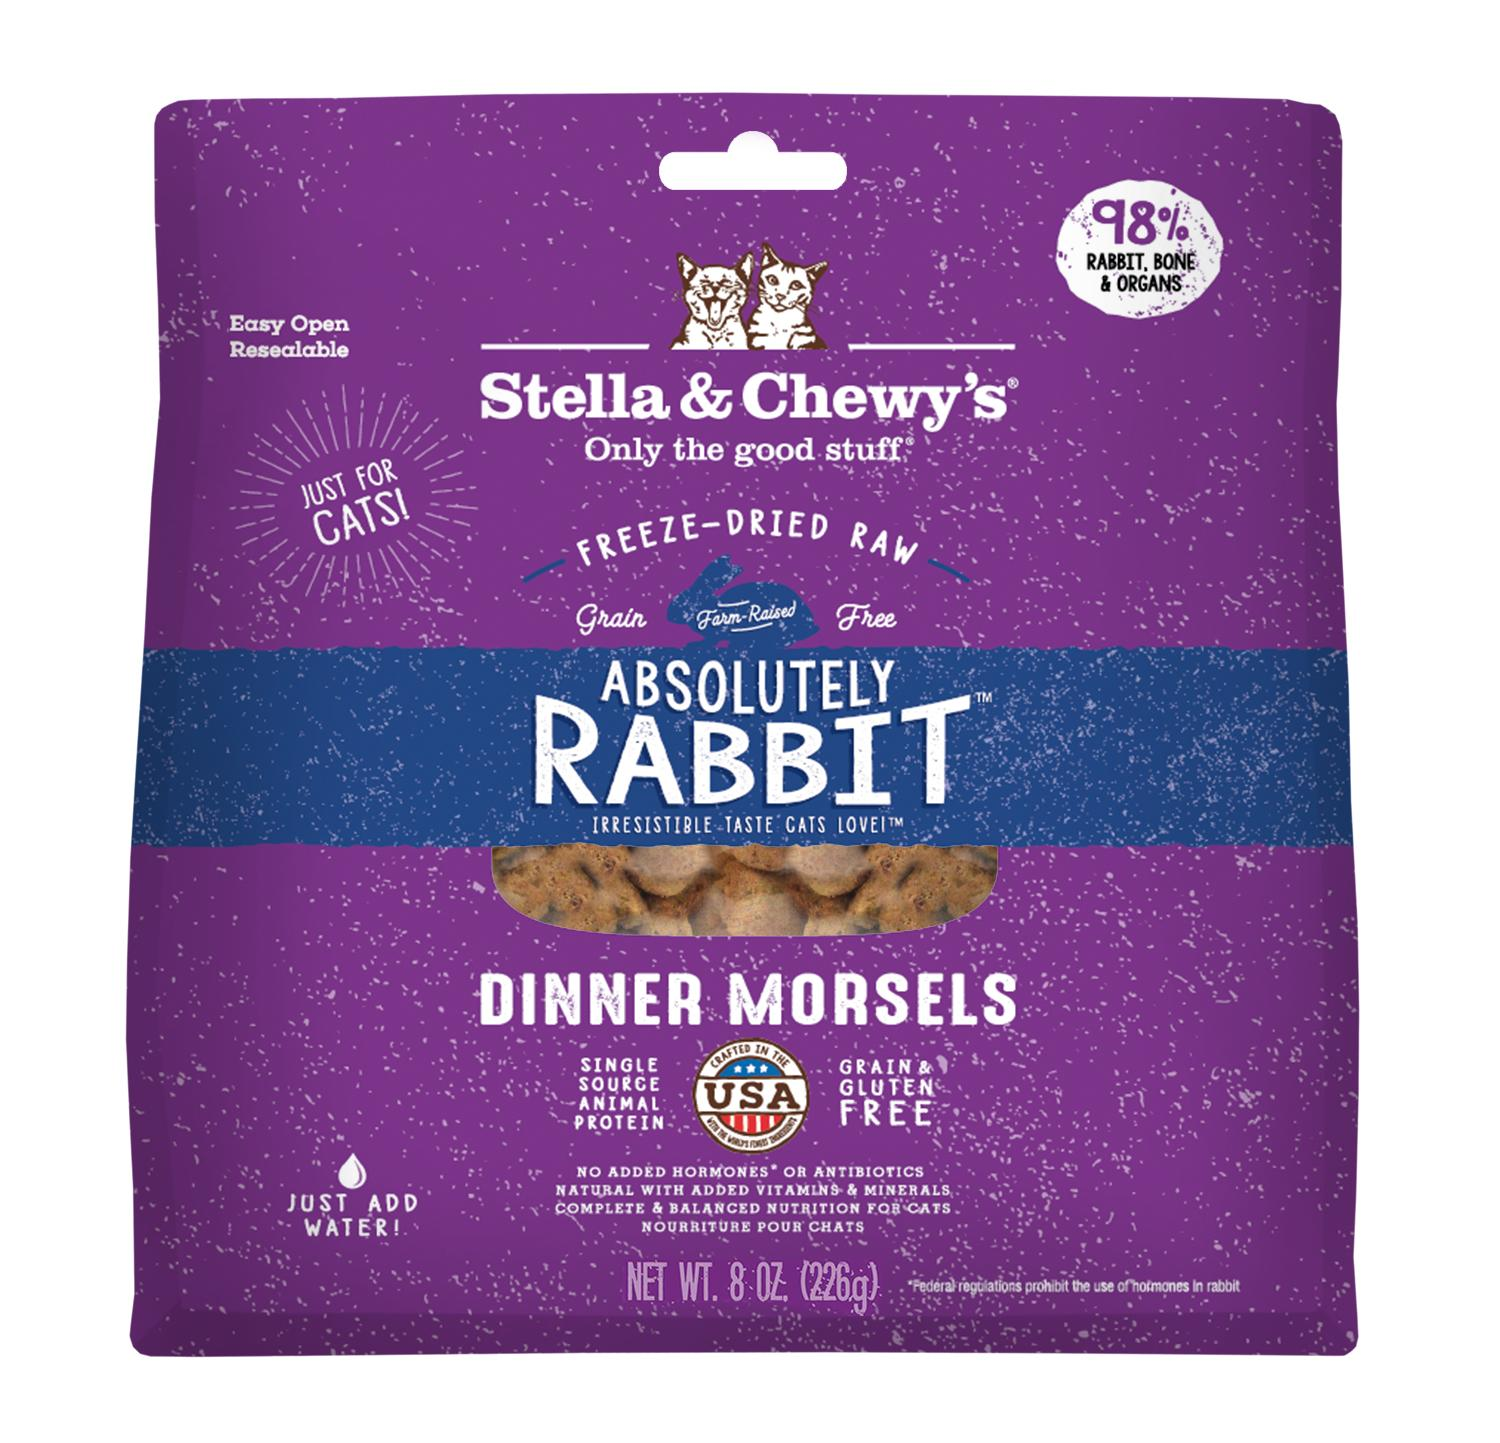 Stella & Chewy's Absolutely Rabbit Dinner Morsels Raw Freeze-Dried Cat Food, 9-oz bag